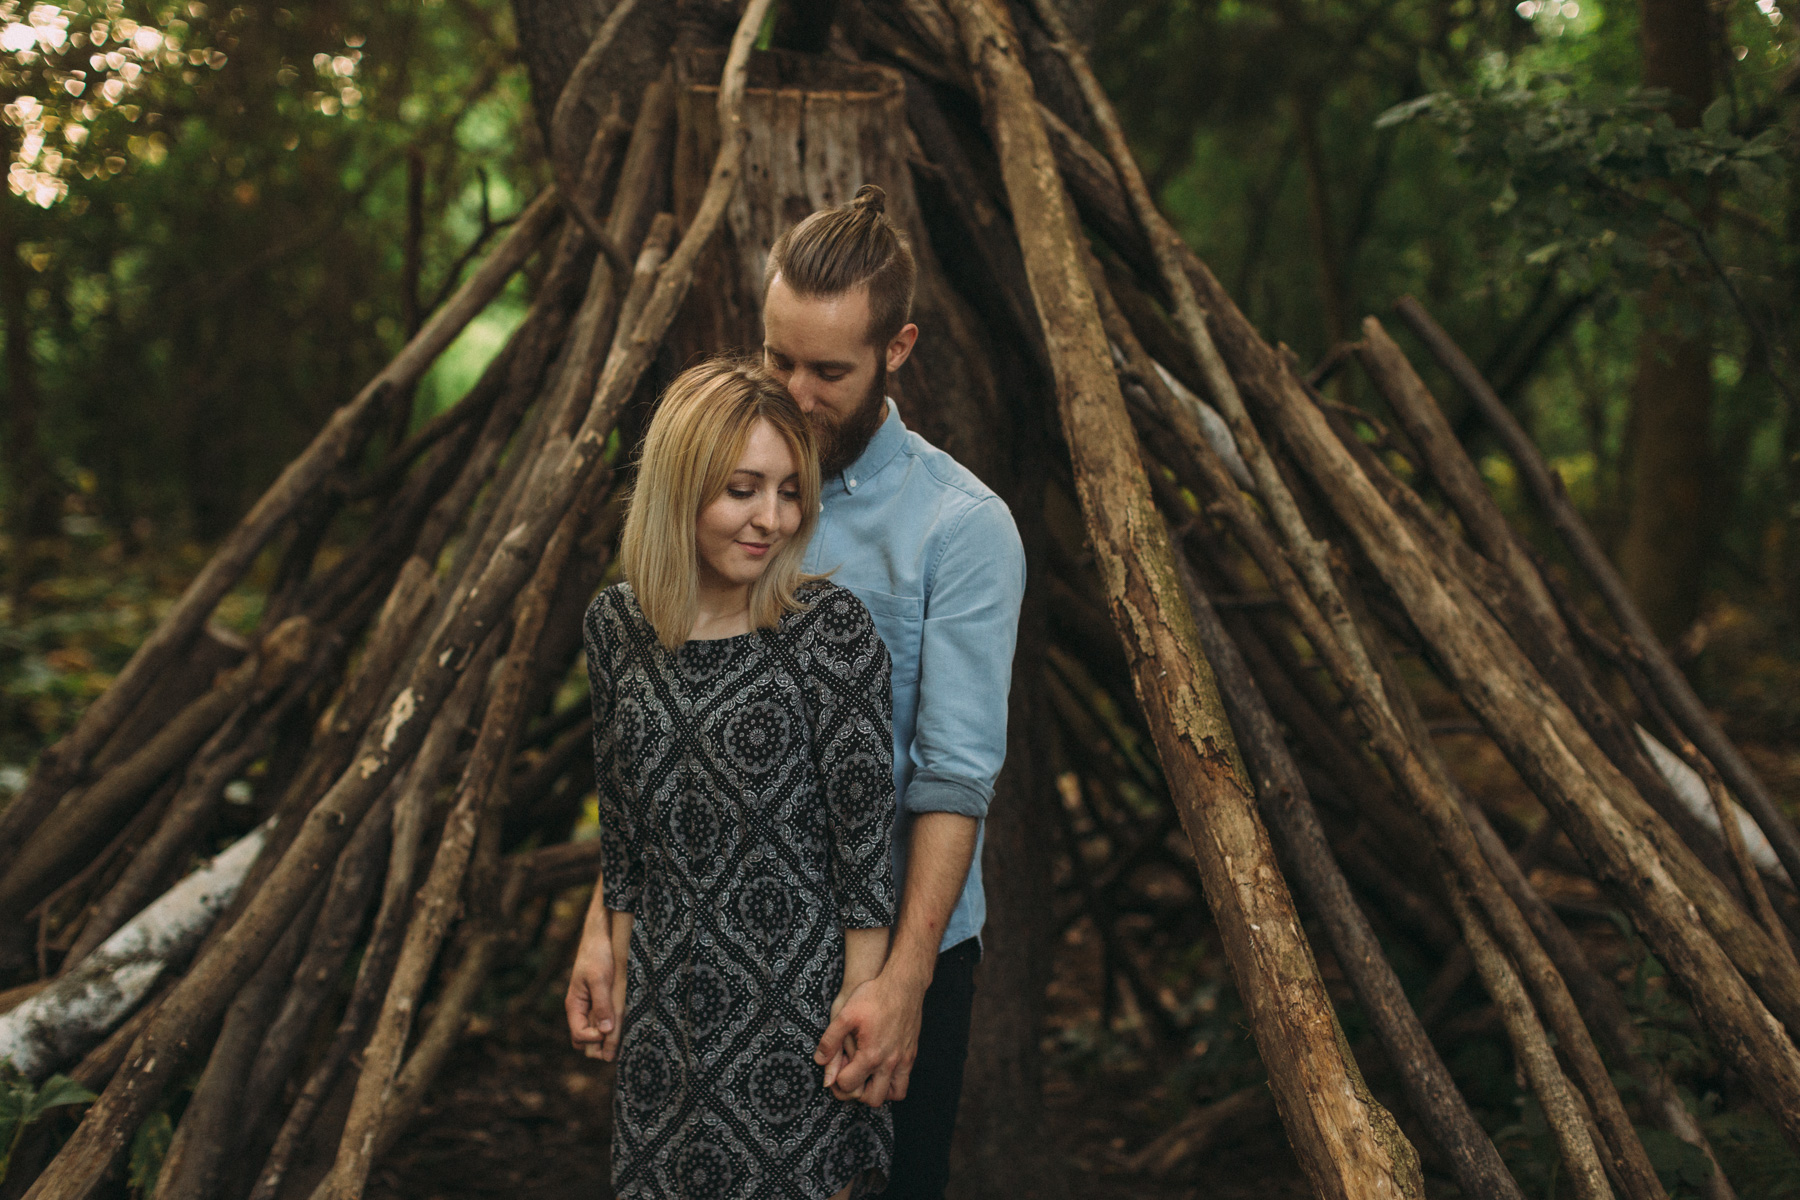 Adventure-engagement-photography-by-Sam-Wong-of-Artanis-Collective_017.jpg